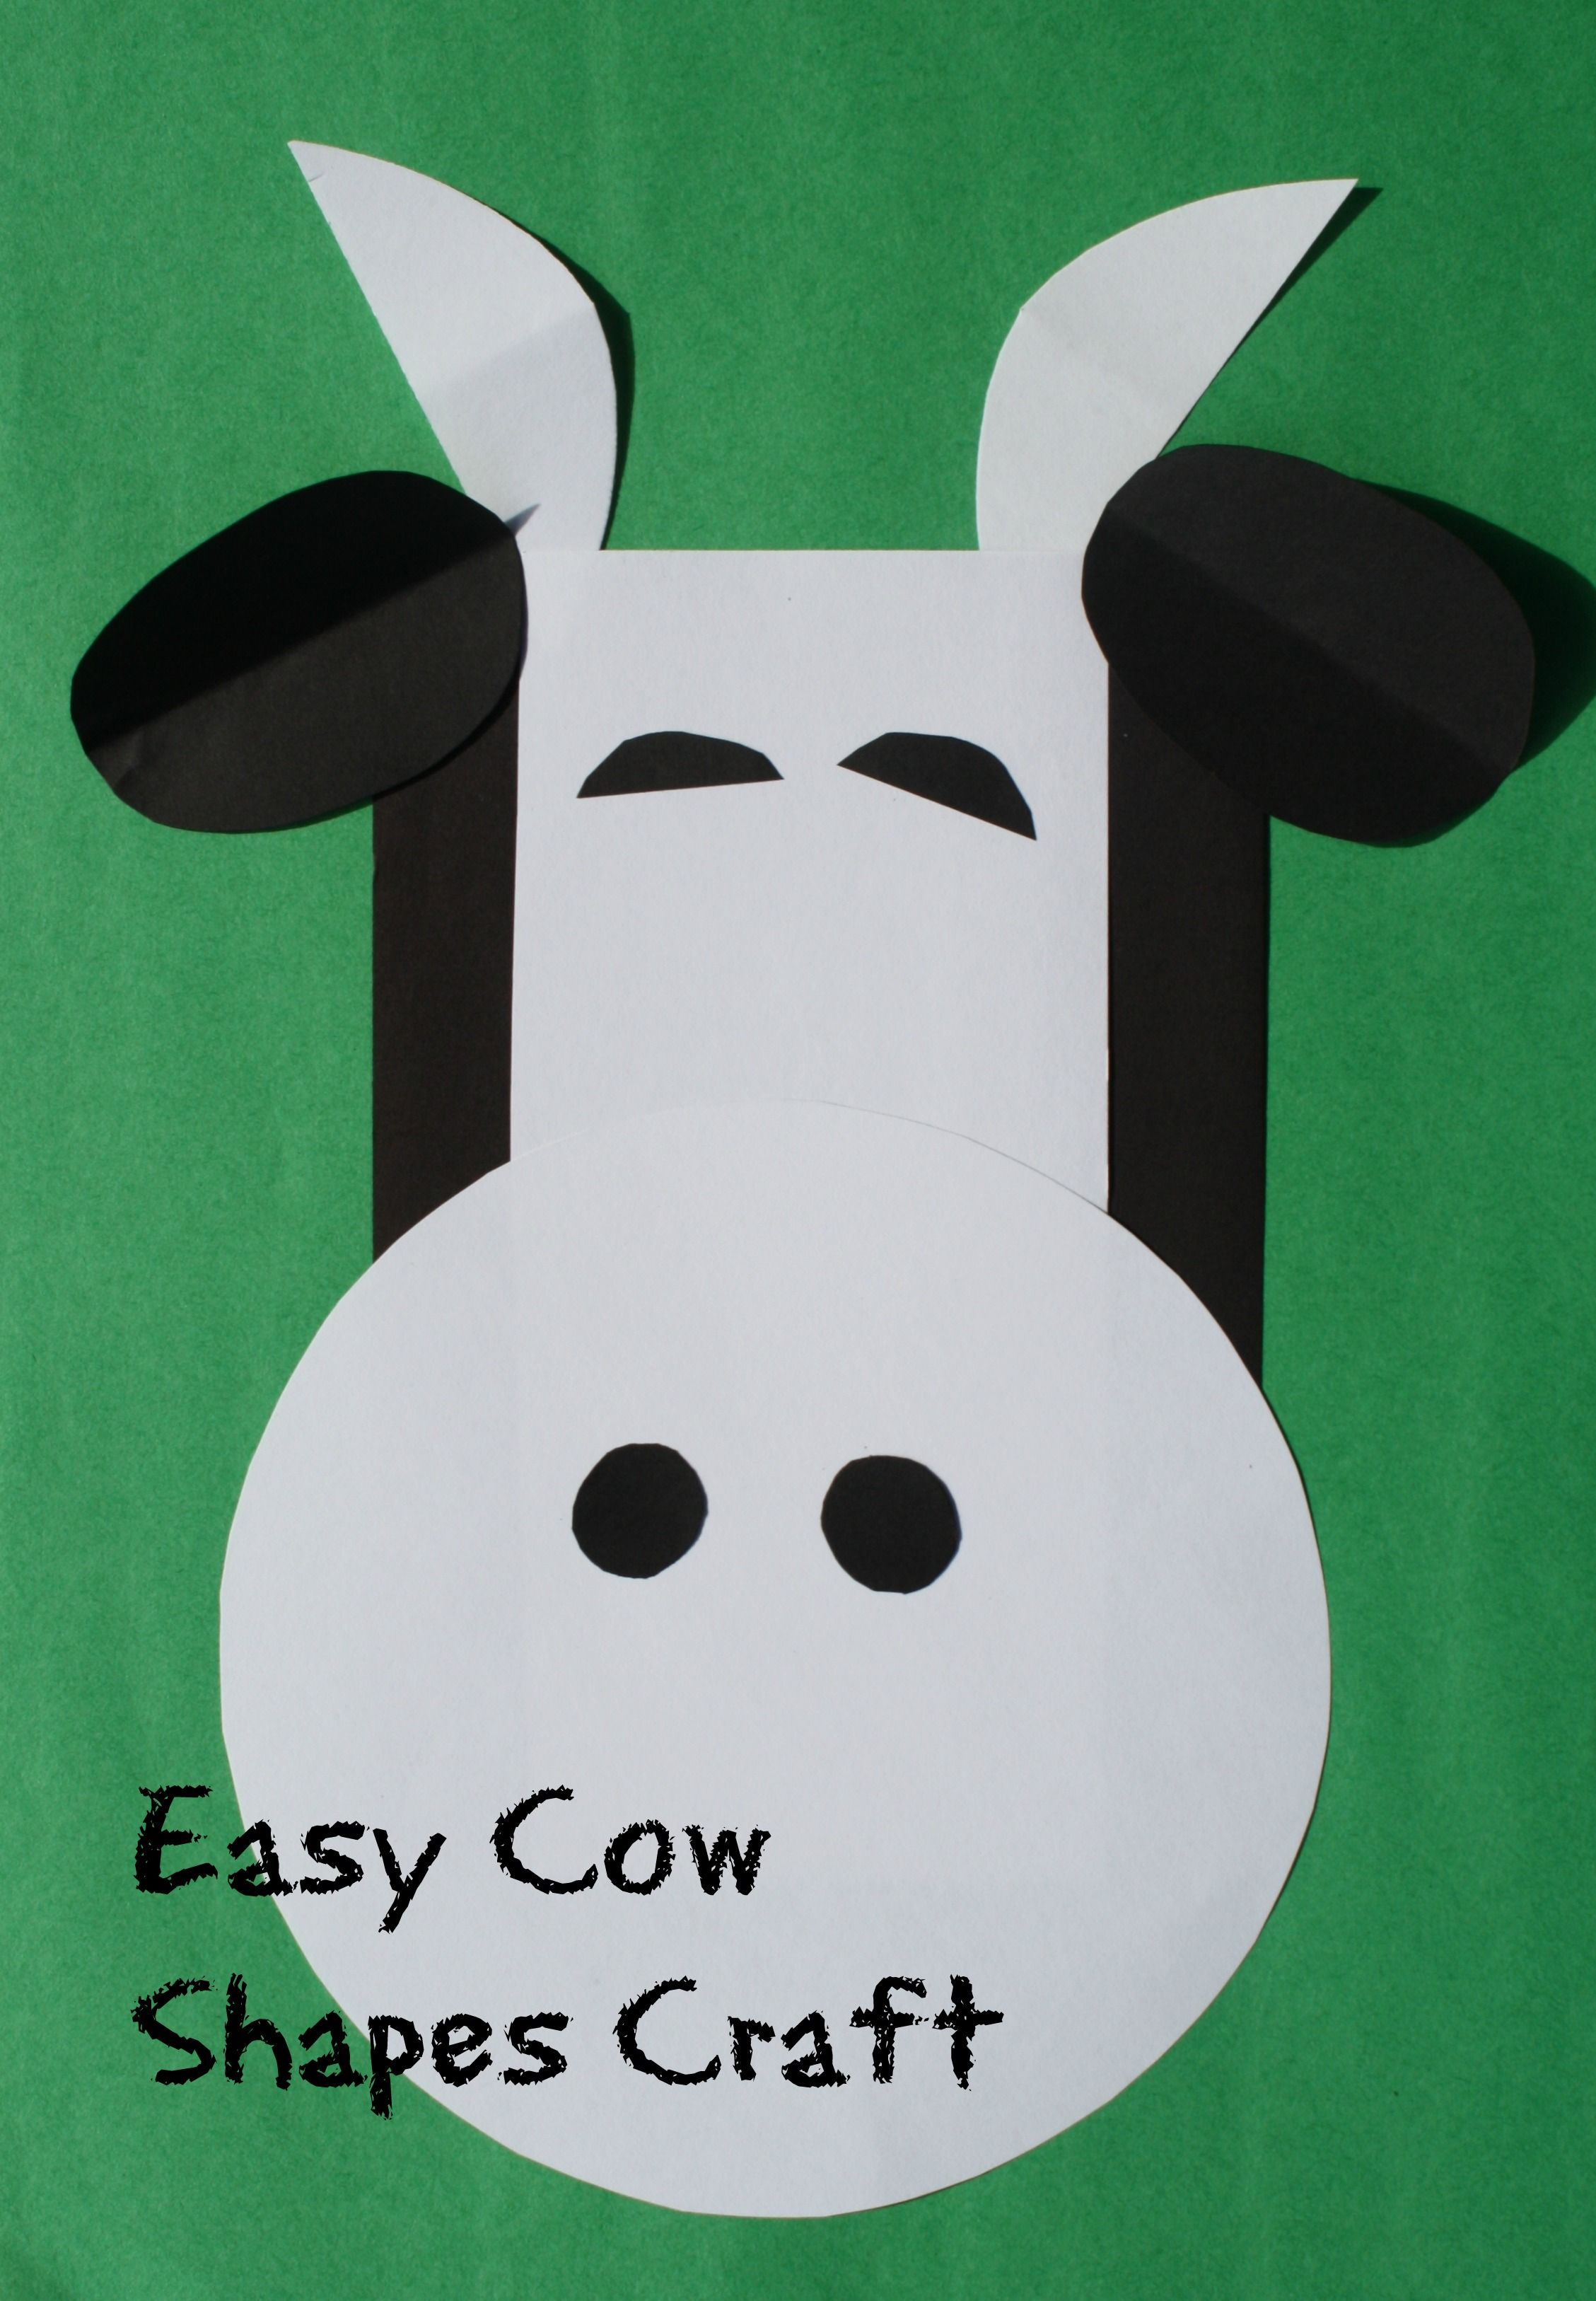 C is for Cow: Shapes Craft (With images) | Farm animal ...